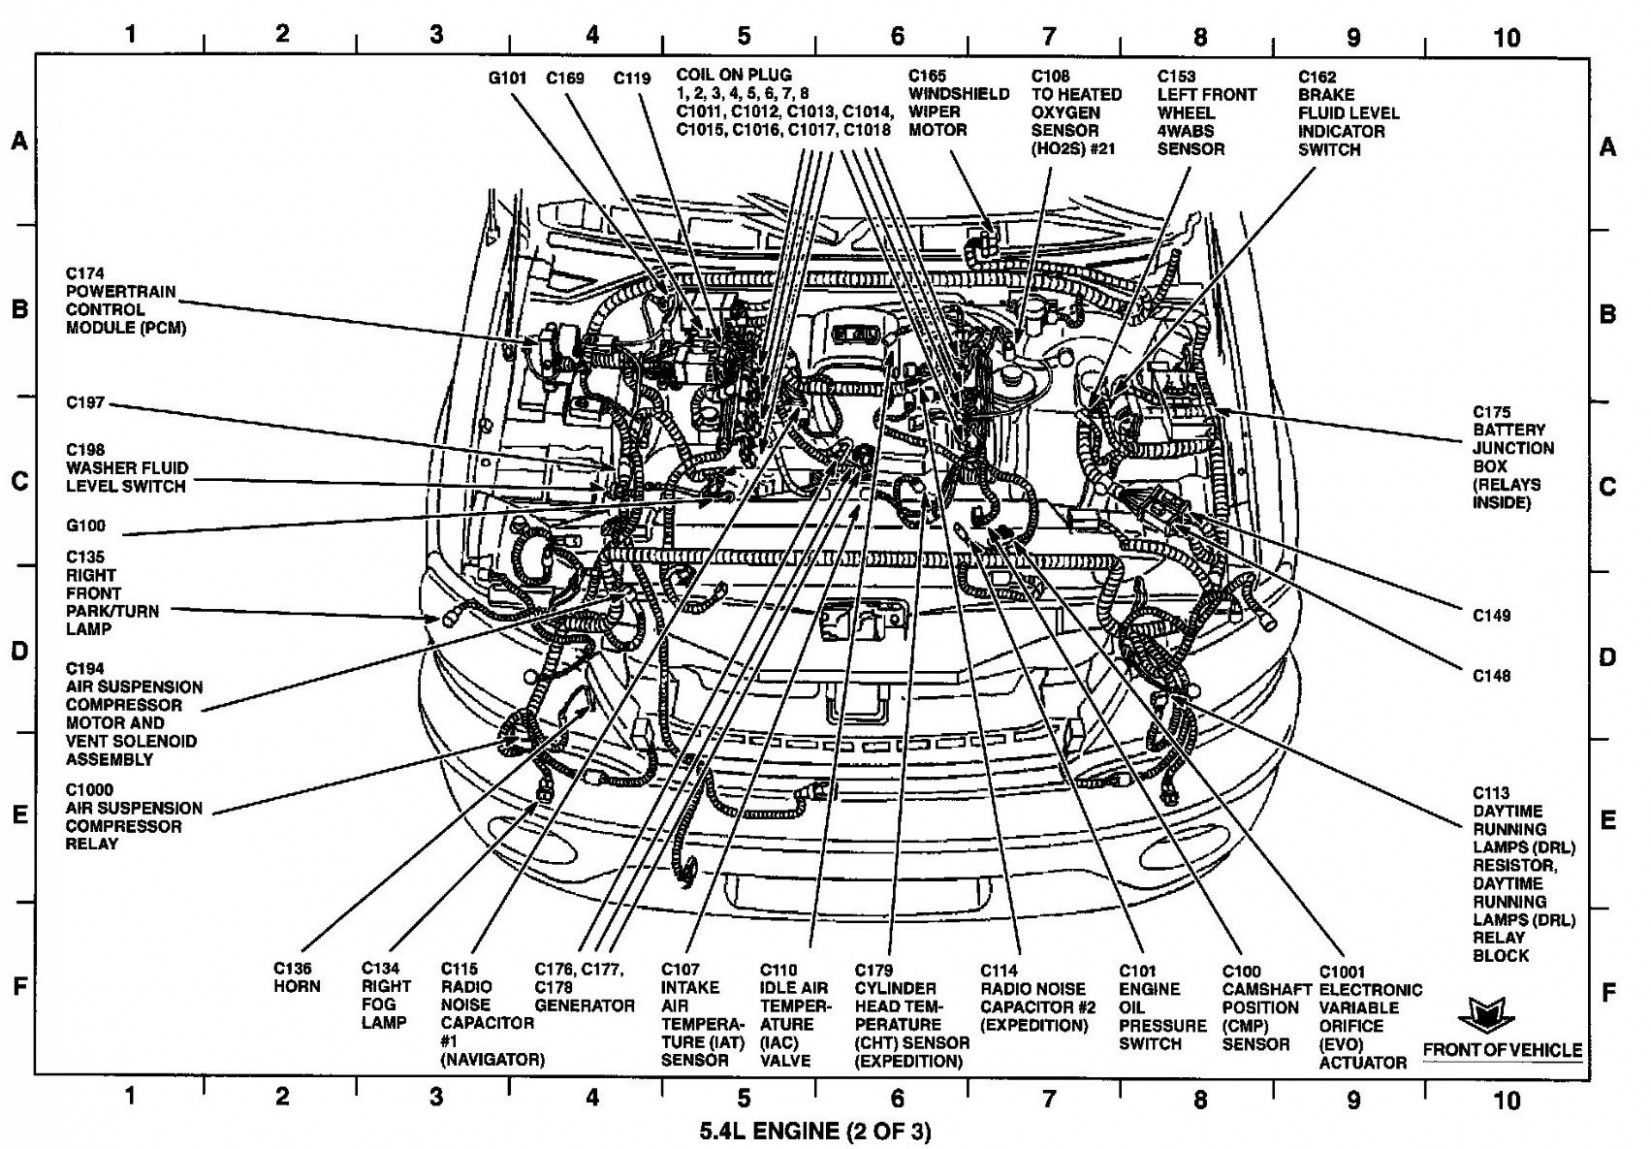 bmw engine bay diagram - simple guide about wiring diagram bmw e46 318i  engine wiring diagram in 2020 | ford focus engine, ford focus, ford focus st  pinterest